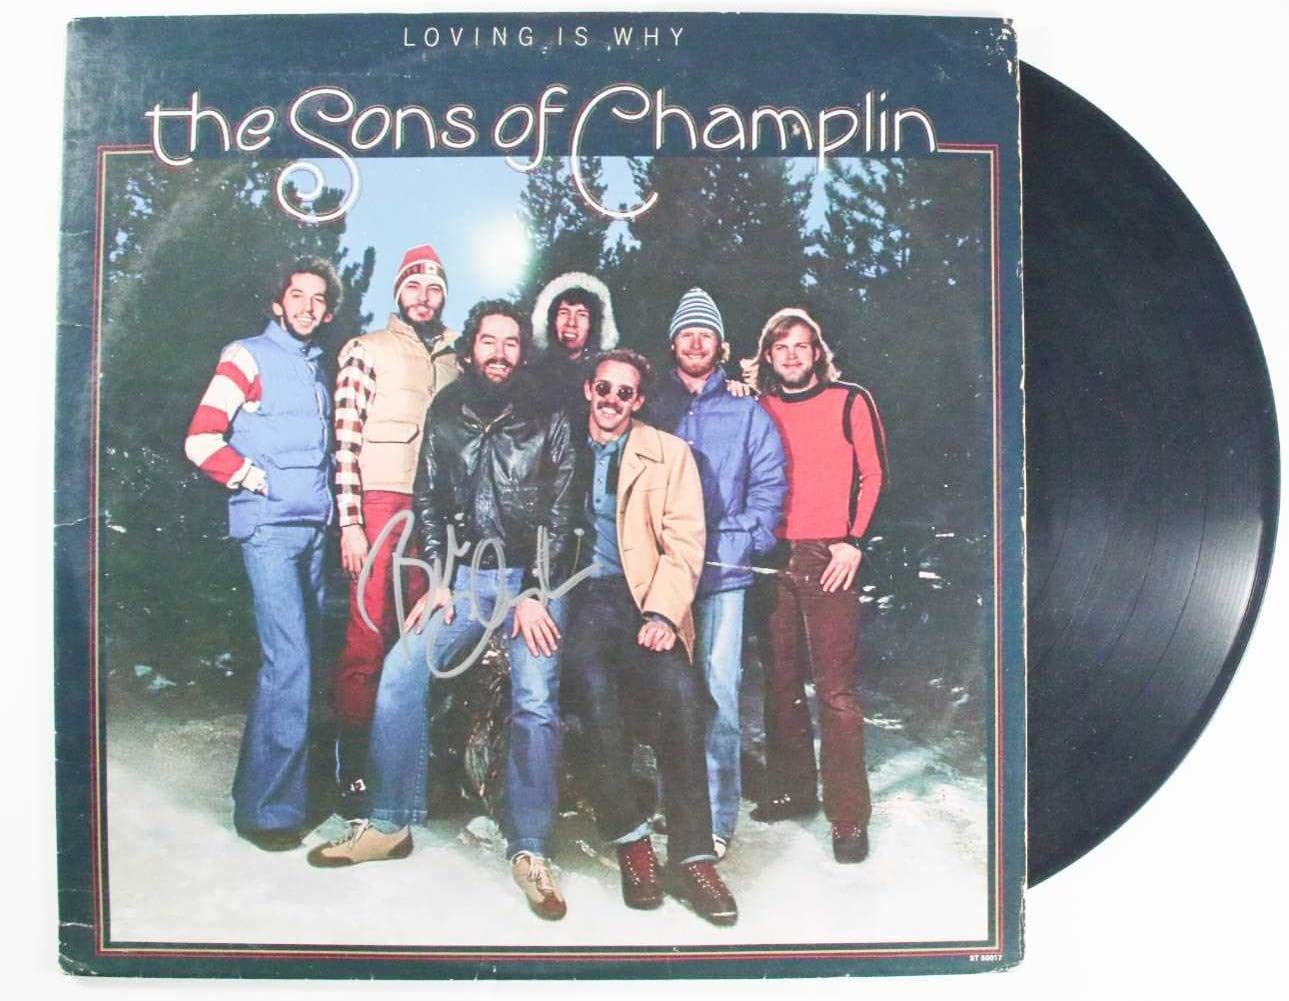 """Bill Champlin Signed Autographed """"The Sons of Champlin"""" Record Album - COA Matching Holograms"""